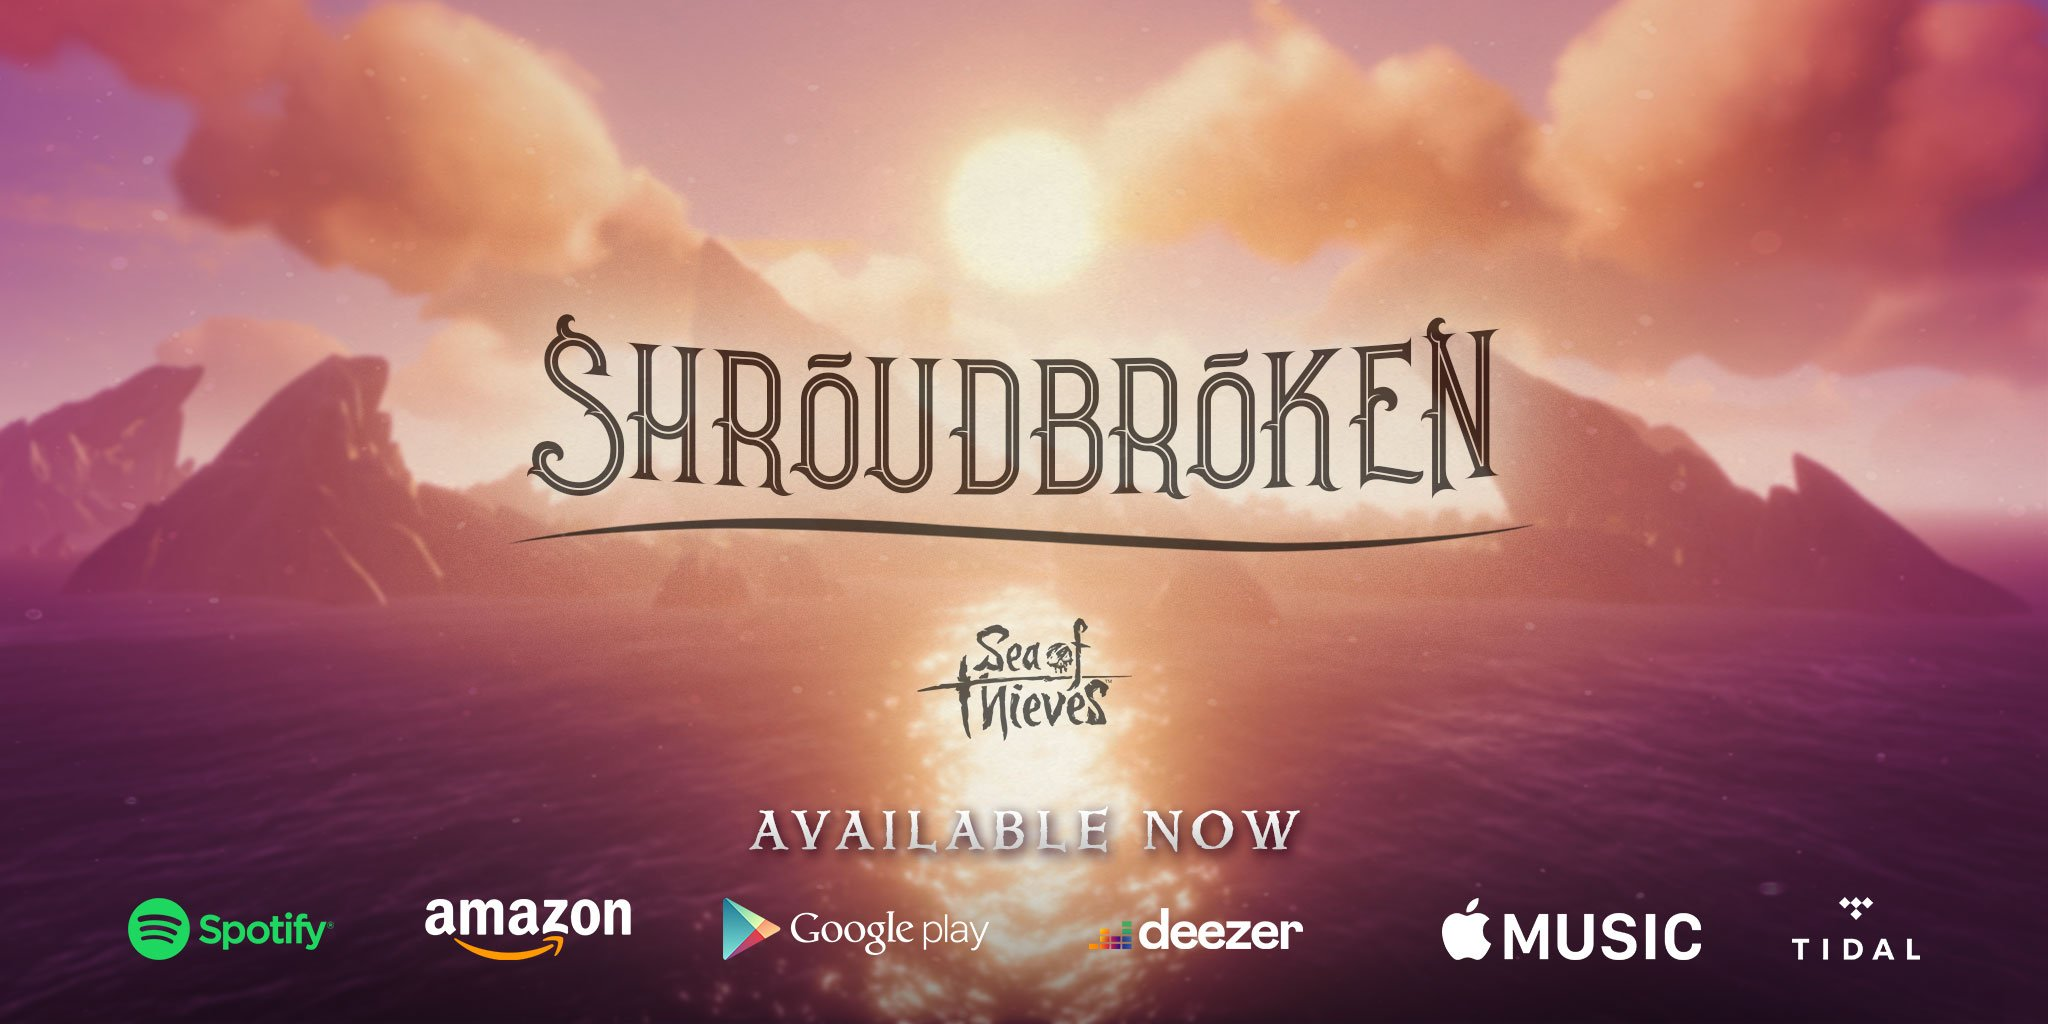 Shroudbroken available now on Spotify, Amazon Music, Google Play, Deezer, Apple Music and Tidal. The promotional image shows an island landscape at sunset.